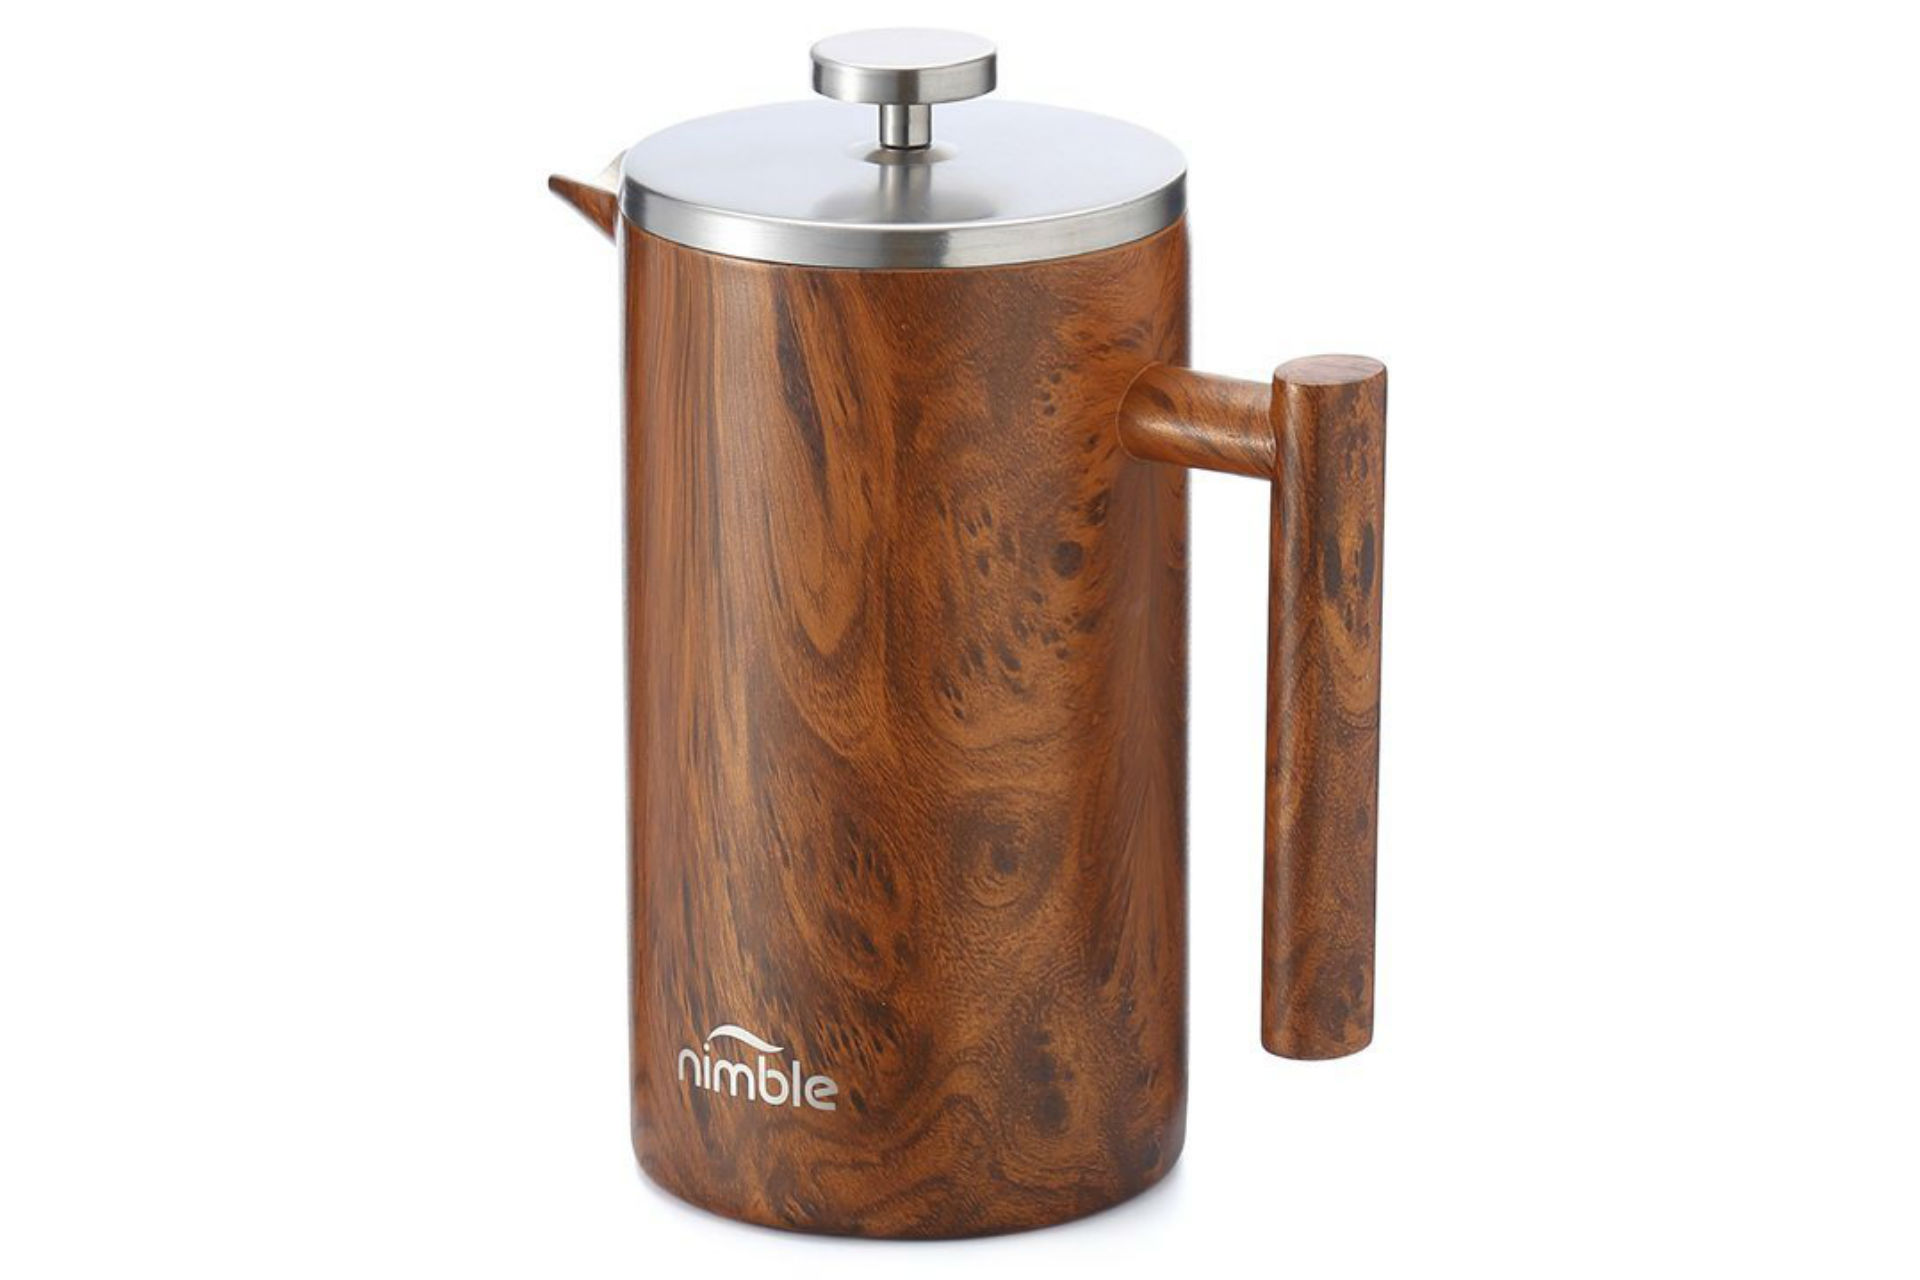 Nimble double-walled French press